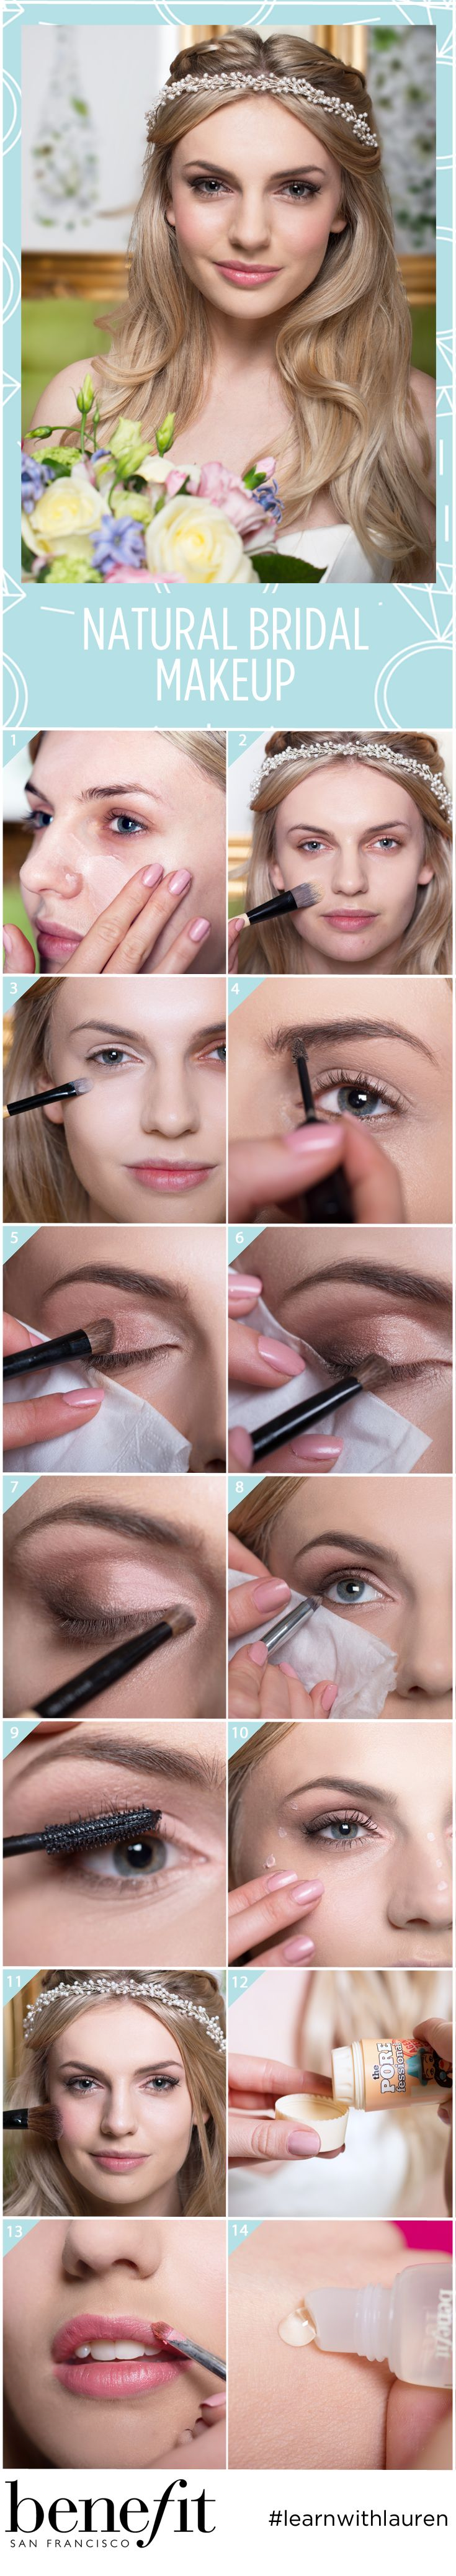 Let your natural beauty dazzle all day on your wedding day, with fluttery eye lashes, big beautiful eyes and a natural glossy lip. It's not as difficult as it looks to create the bridal makeup you desire! See the full wedding makeup tutorial at blog.benefitcosmetics.co.uk